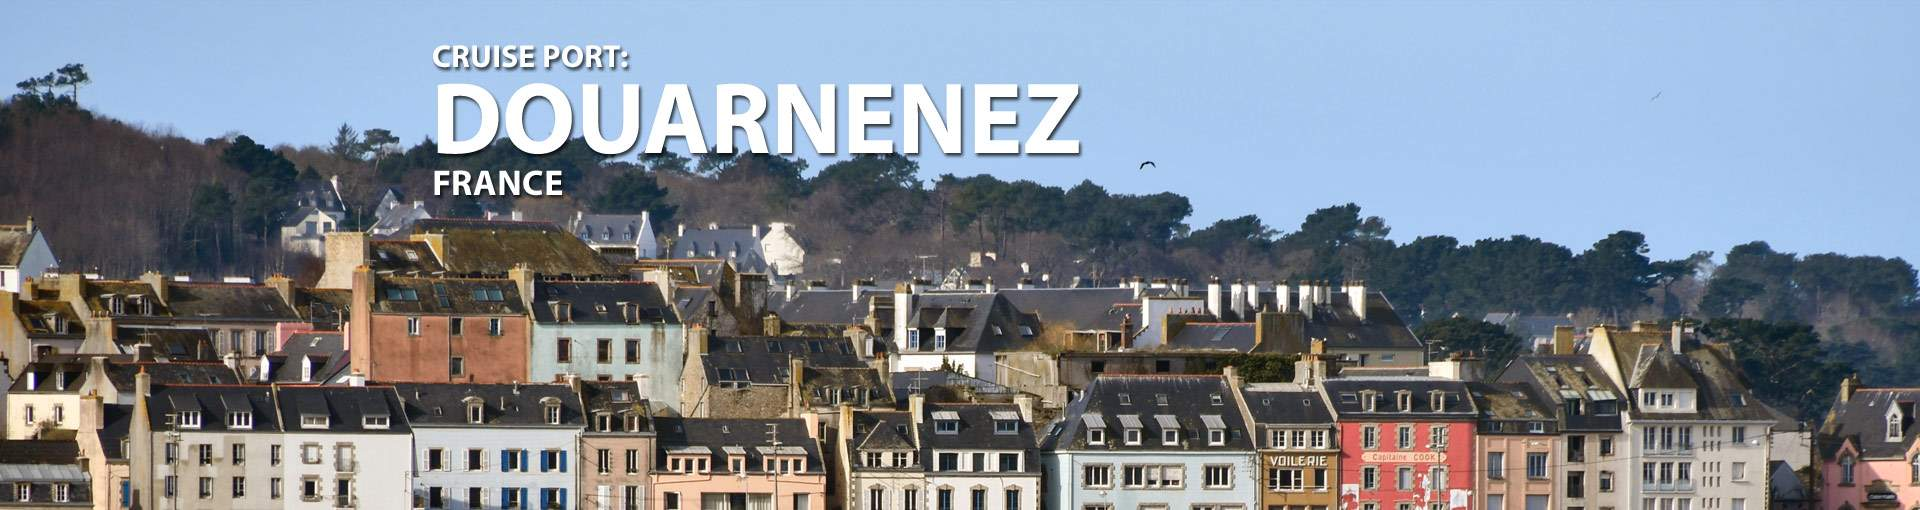 Douarnenez, France Cruise Port